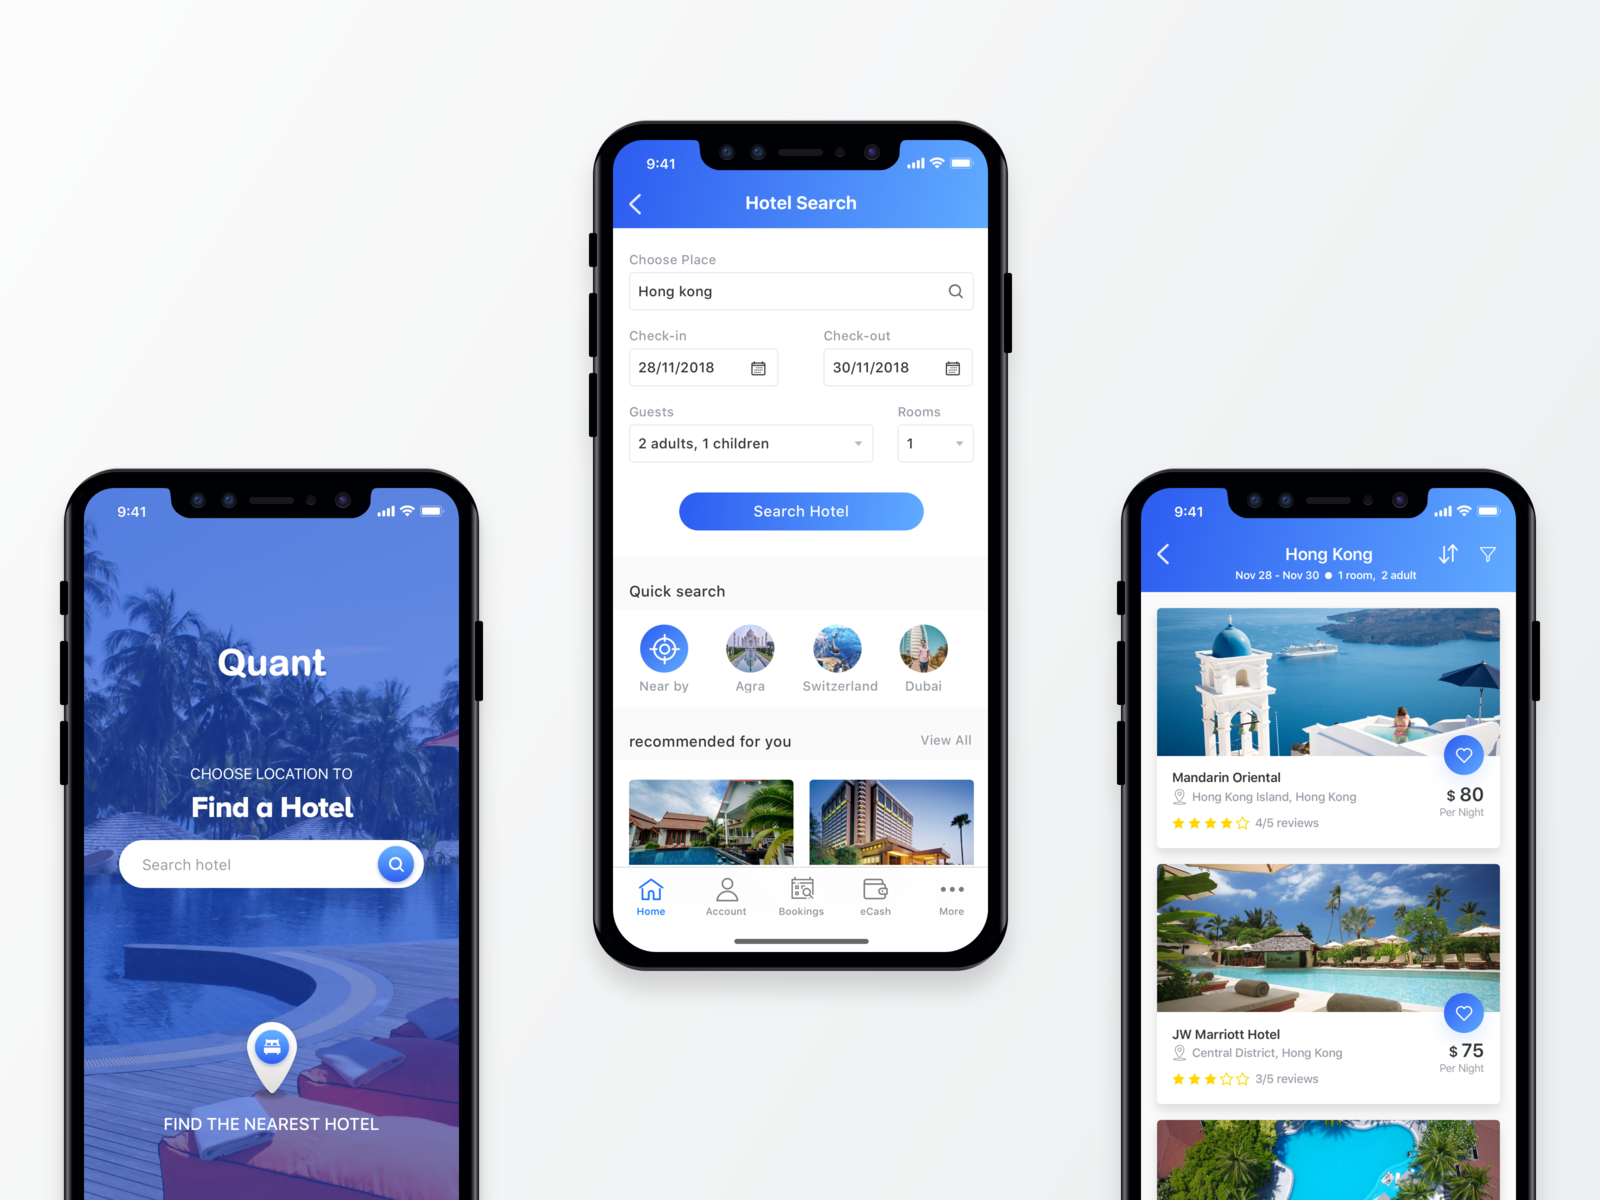 Quant Hotels Booking App Hotel Booking App Booking App Hotel App